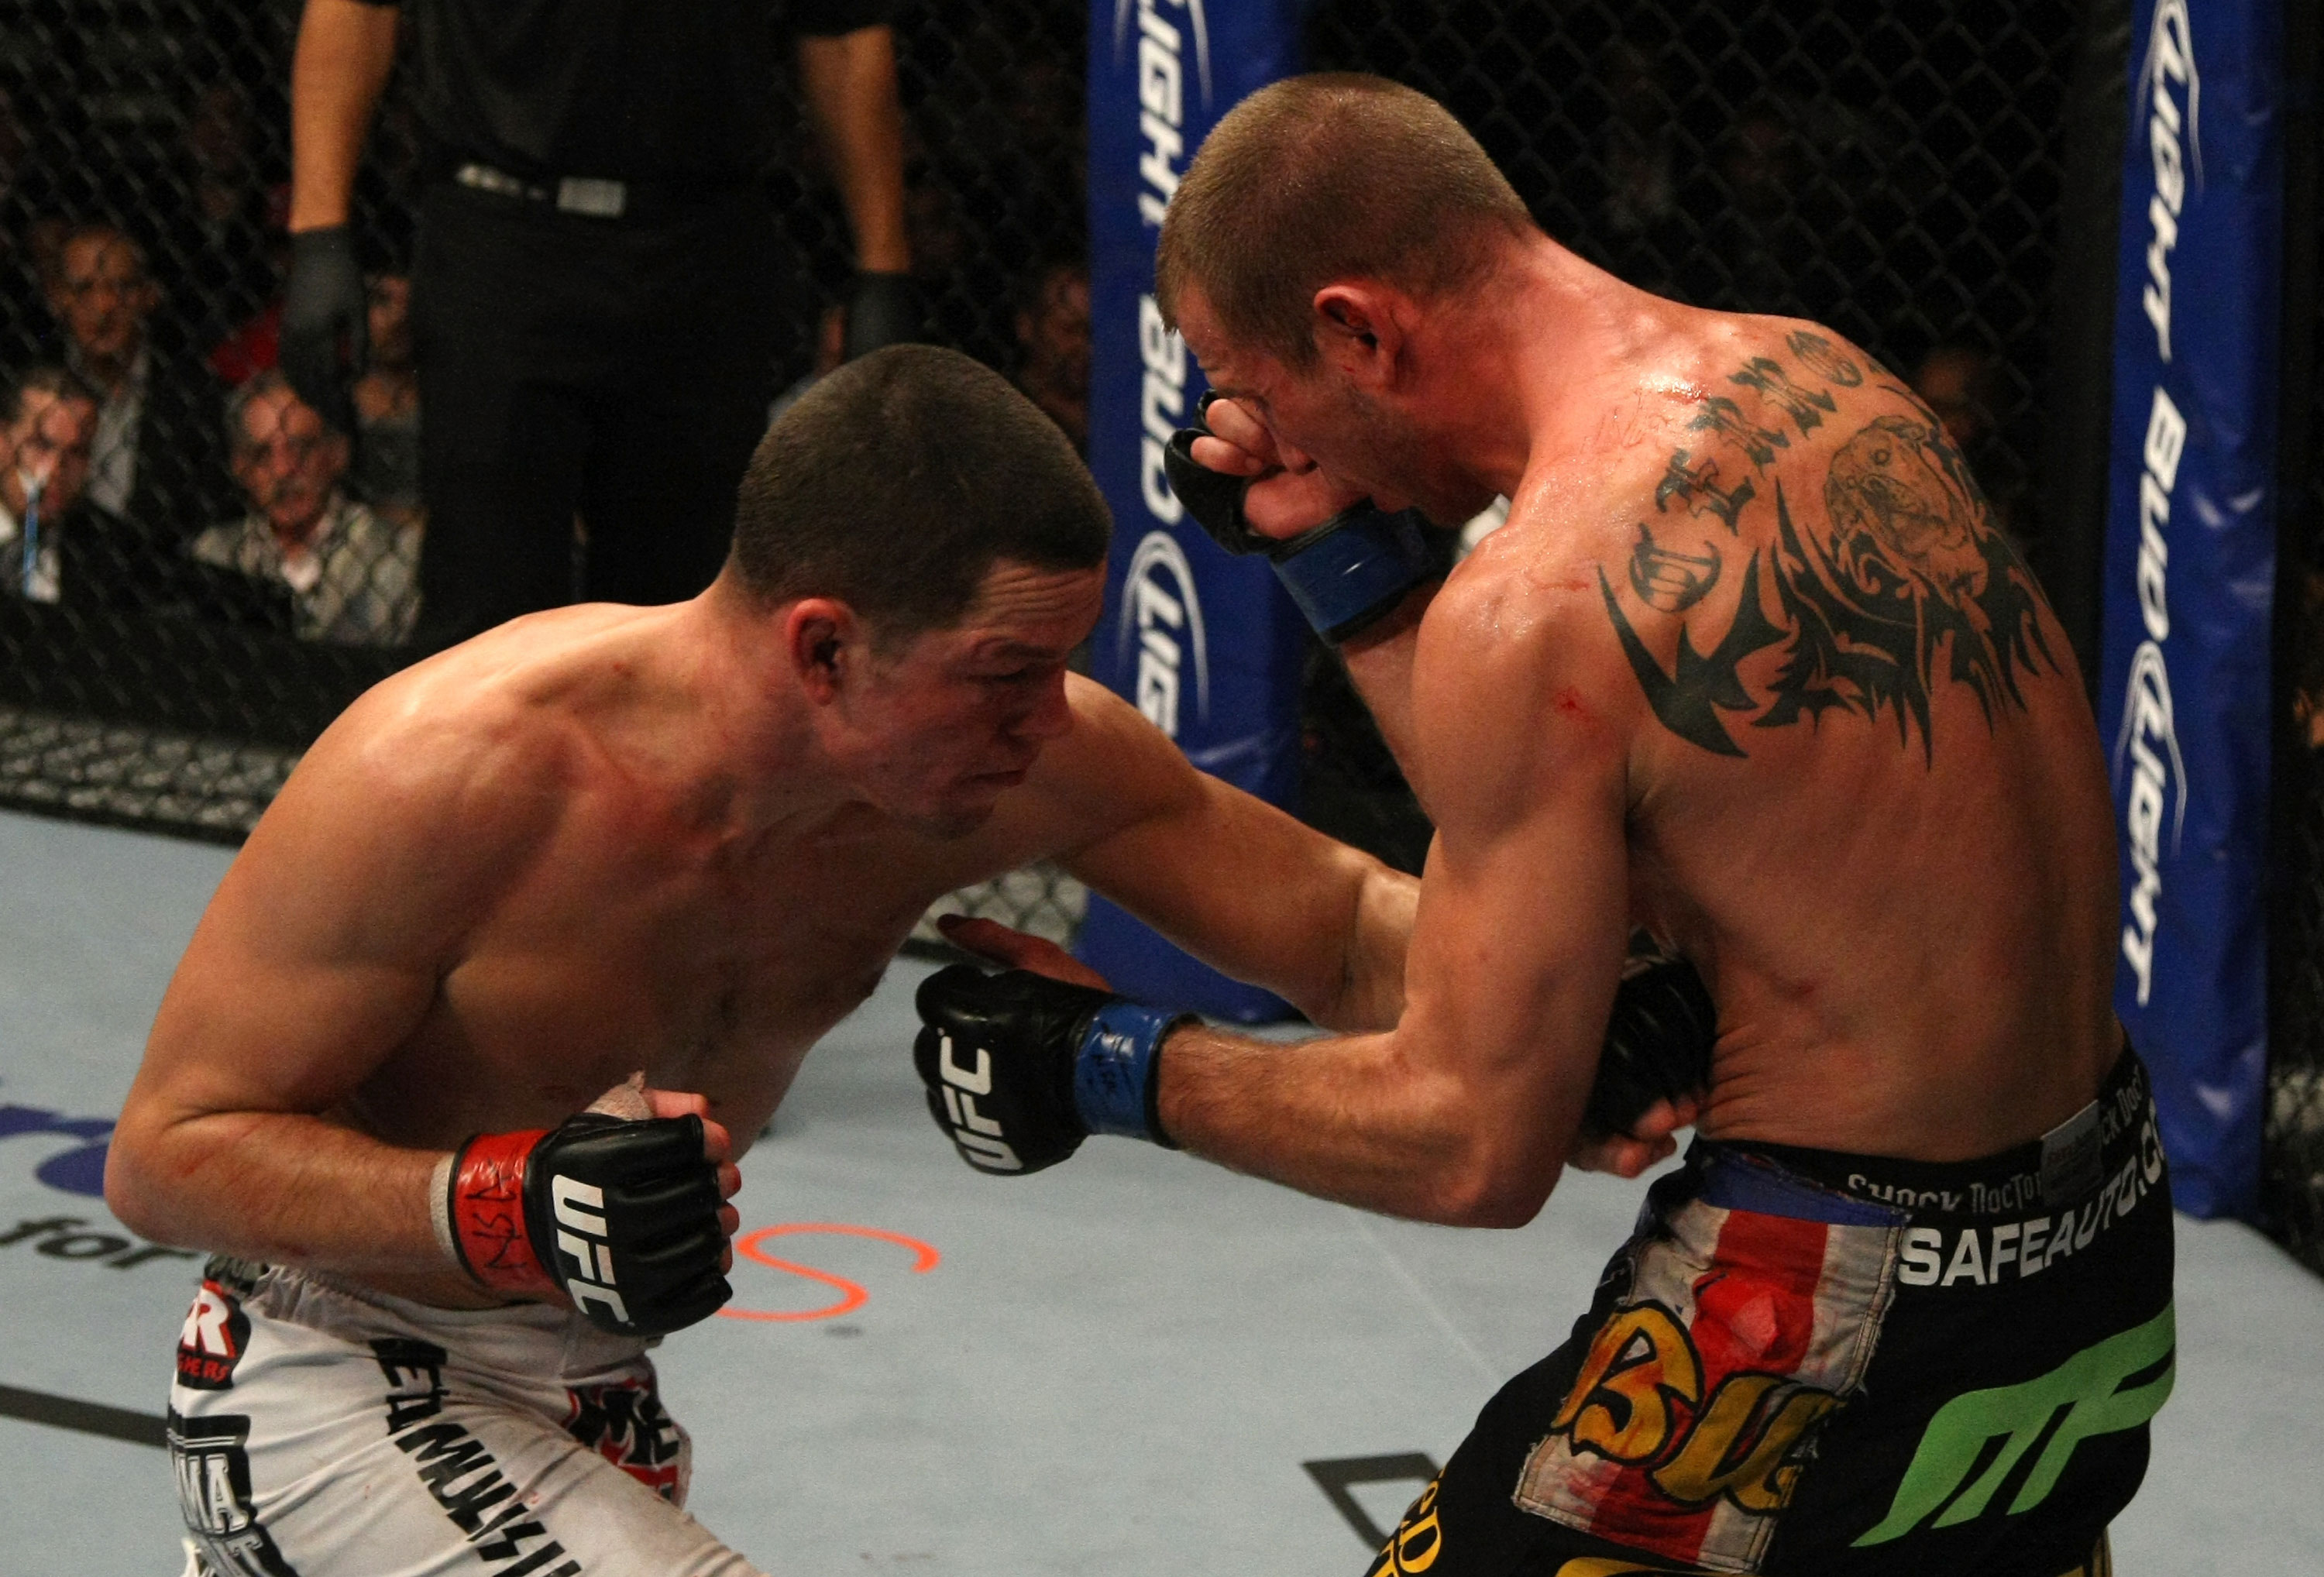 LAS VEGAS, NV - DECEMBER 30:  Nate Diaz (left) hits Donald Cerrone with a punch to the body during the UFC 141 event at the MGM Grand Garden Arena on December 30, 2011 in Las Vegas, Nevada.  (Photo by Donald Miralle/Zuffa LLC/Zuffa LLC via Getty Images) *** Local Caption *** Nate Diaz; Donald Cerrone